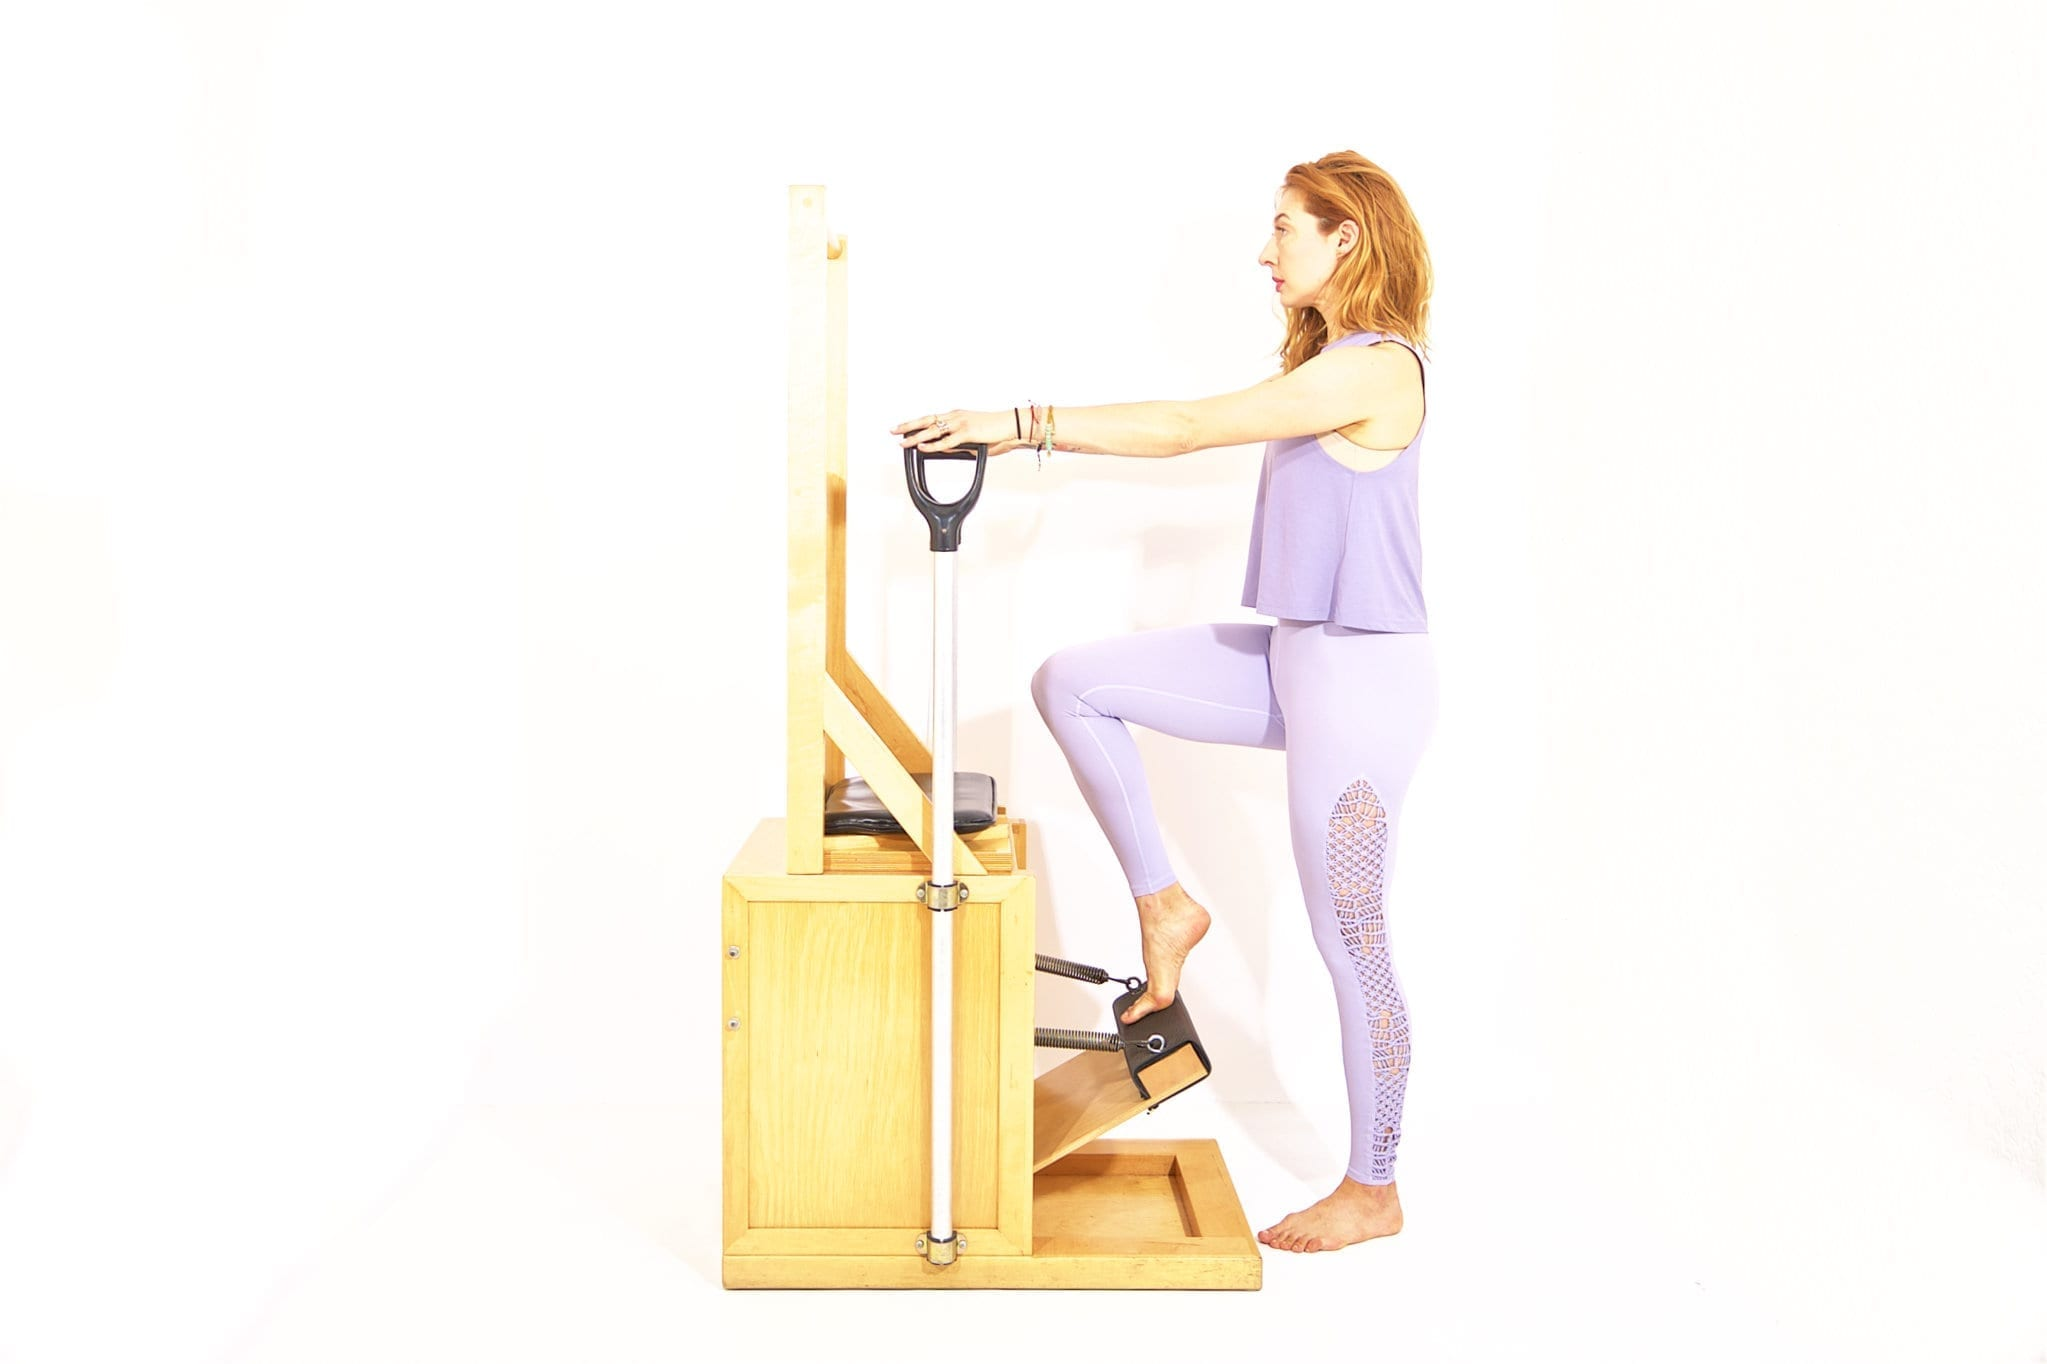 Press Down Front on the High Chair | Online Pilates Classes